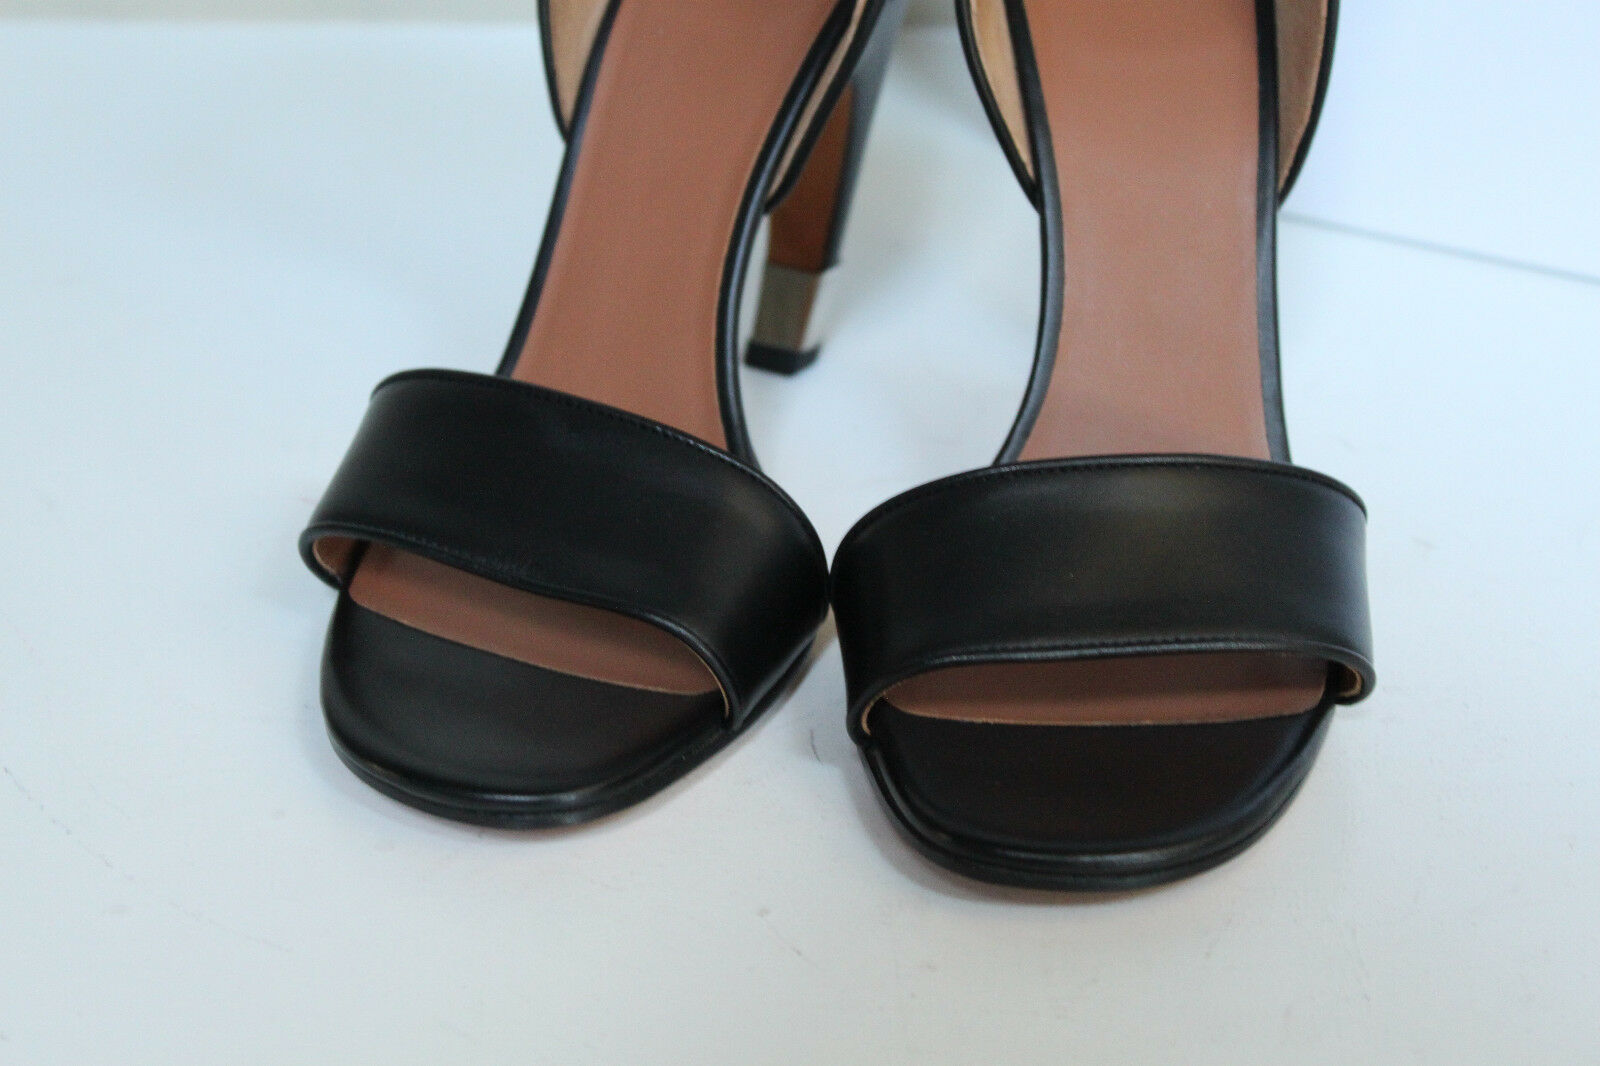 New sz sz sz 9   39 Givenchy Black Leather Curve Heel Ankle Sandal shoes 14f252